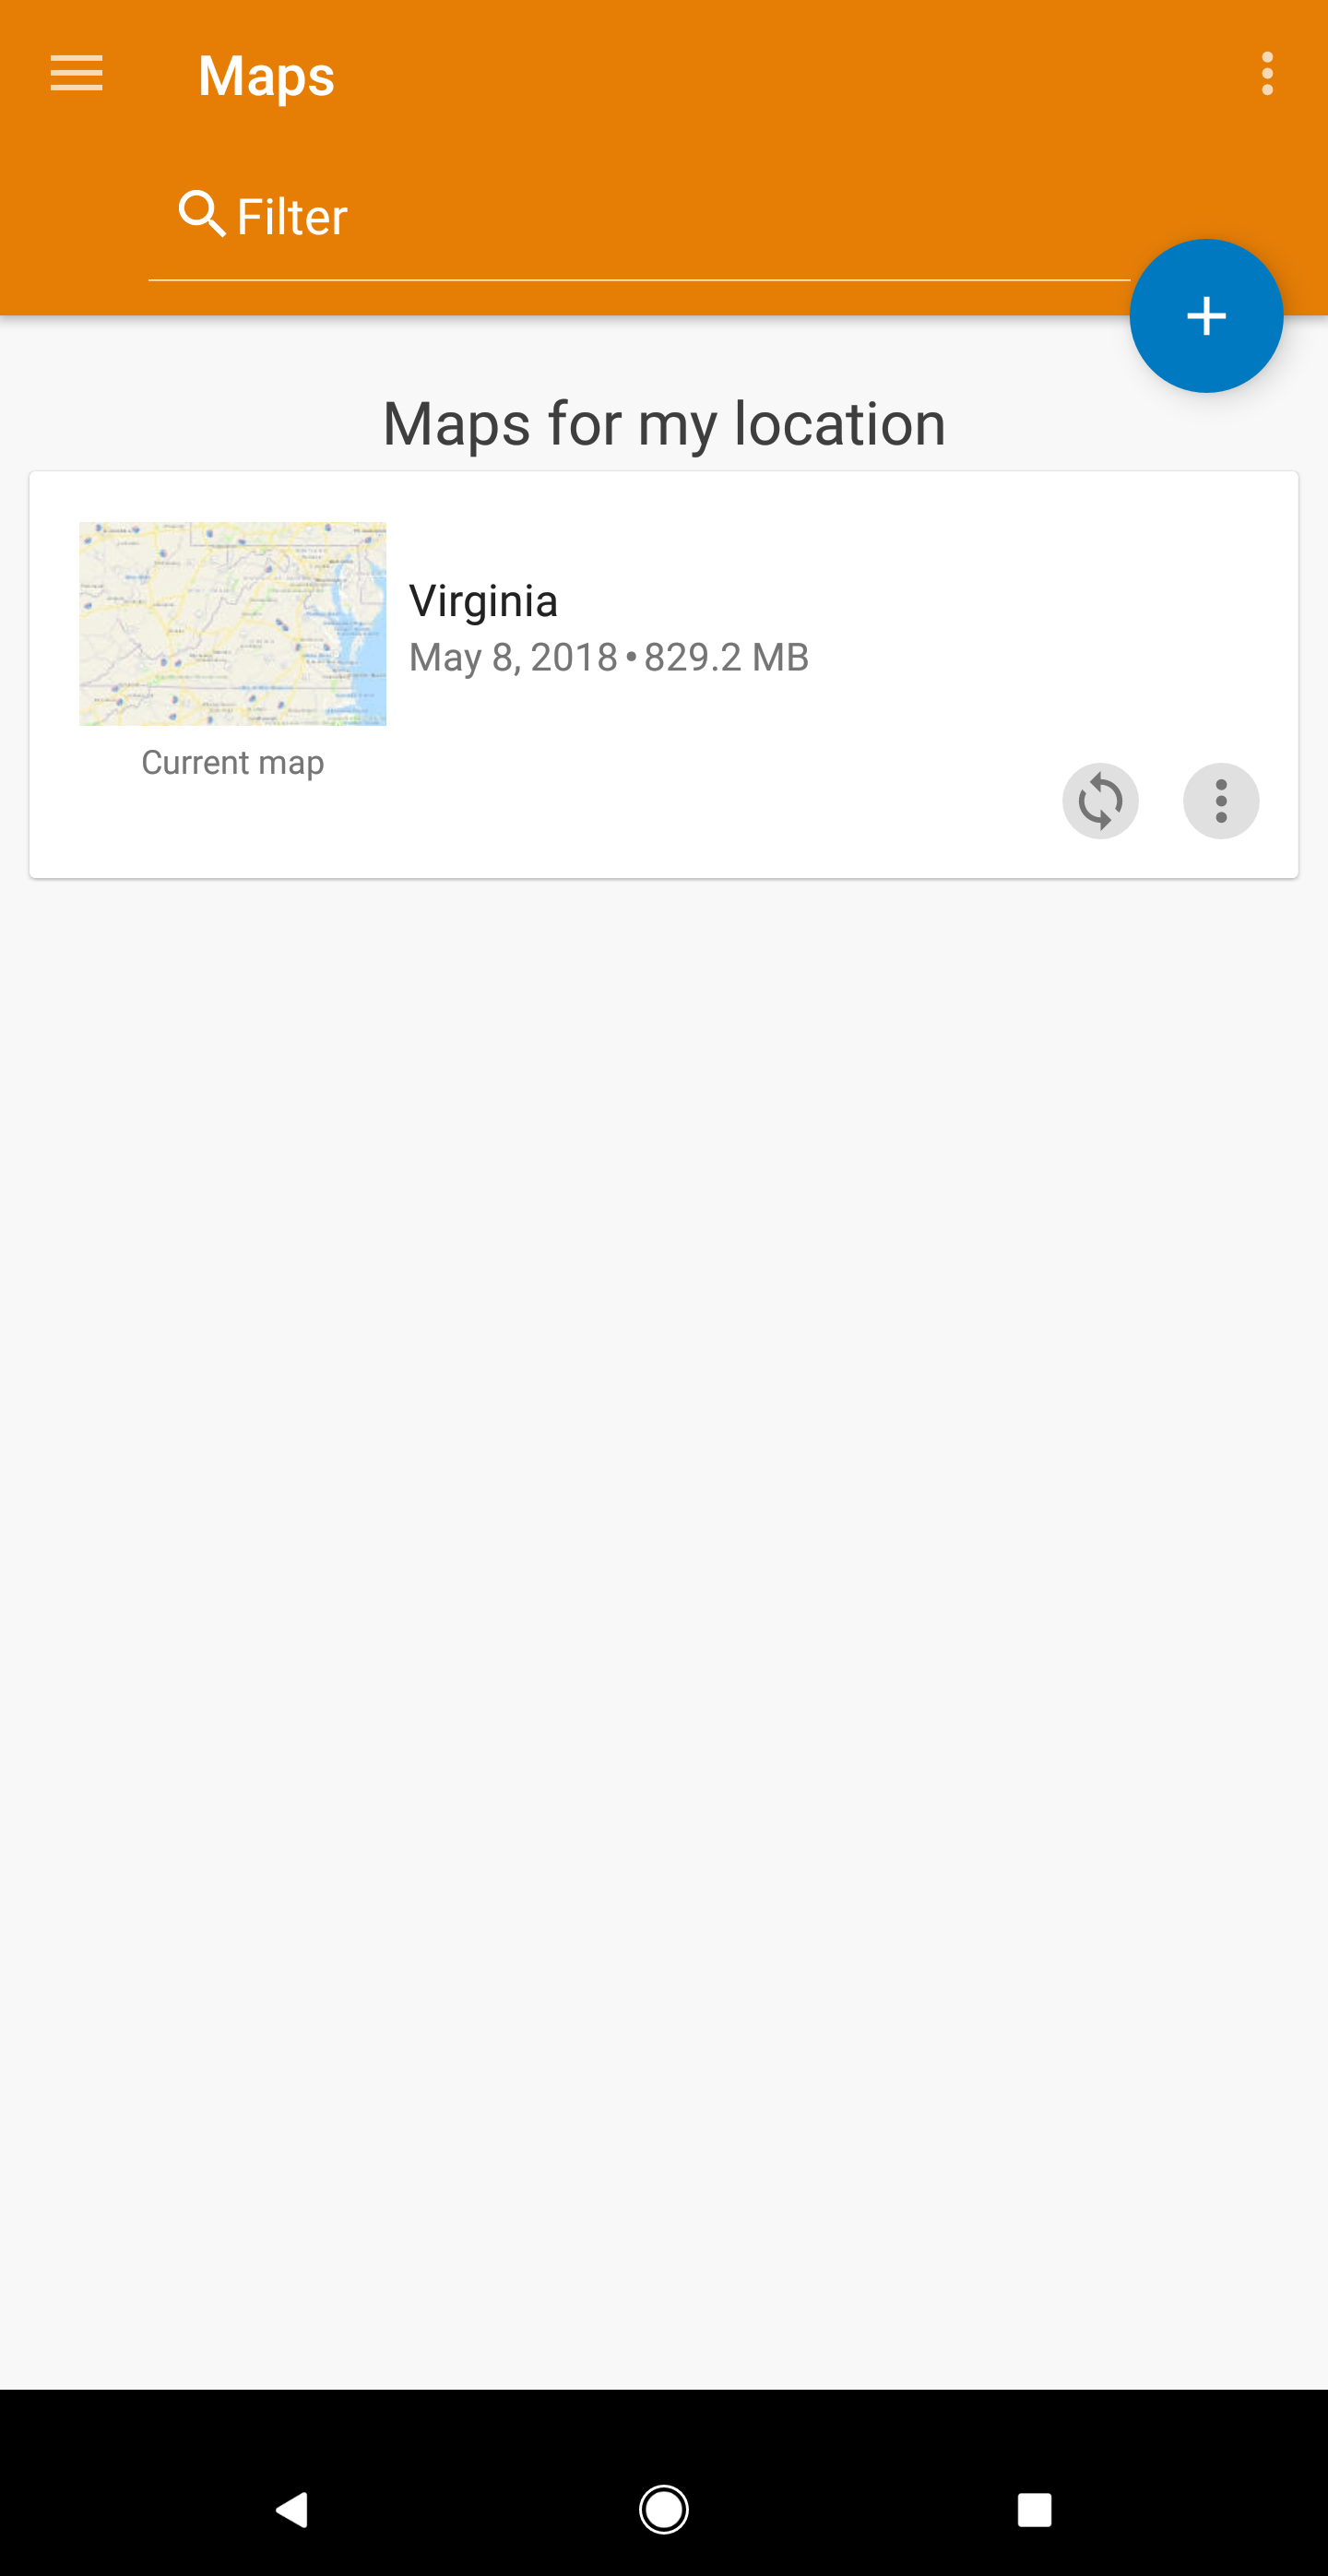 Maps for My Location